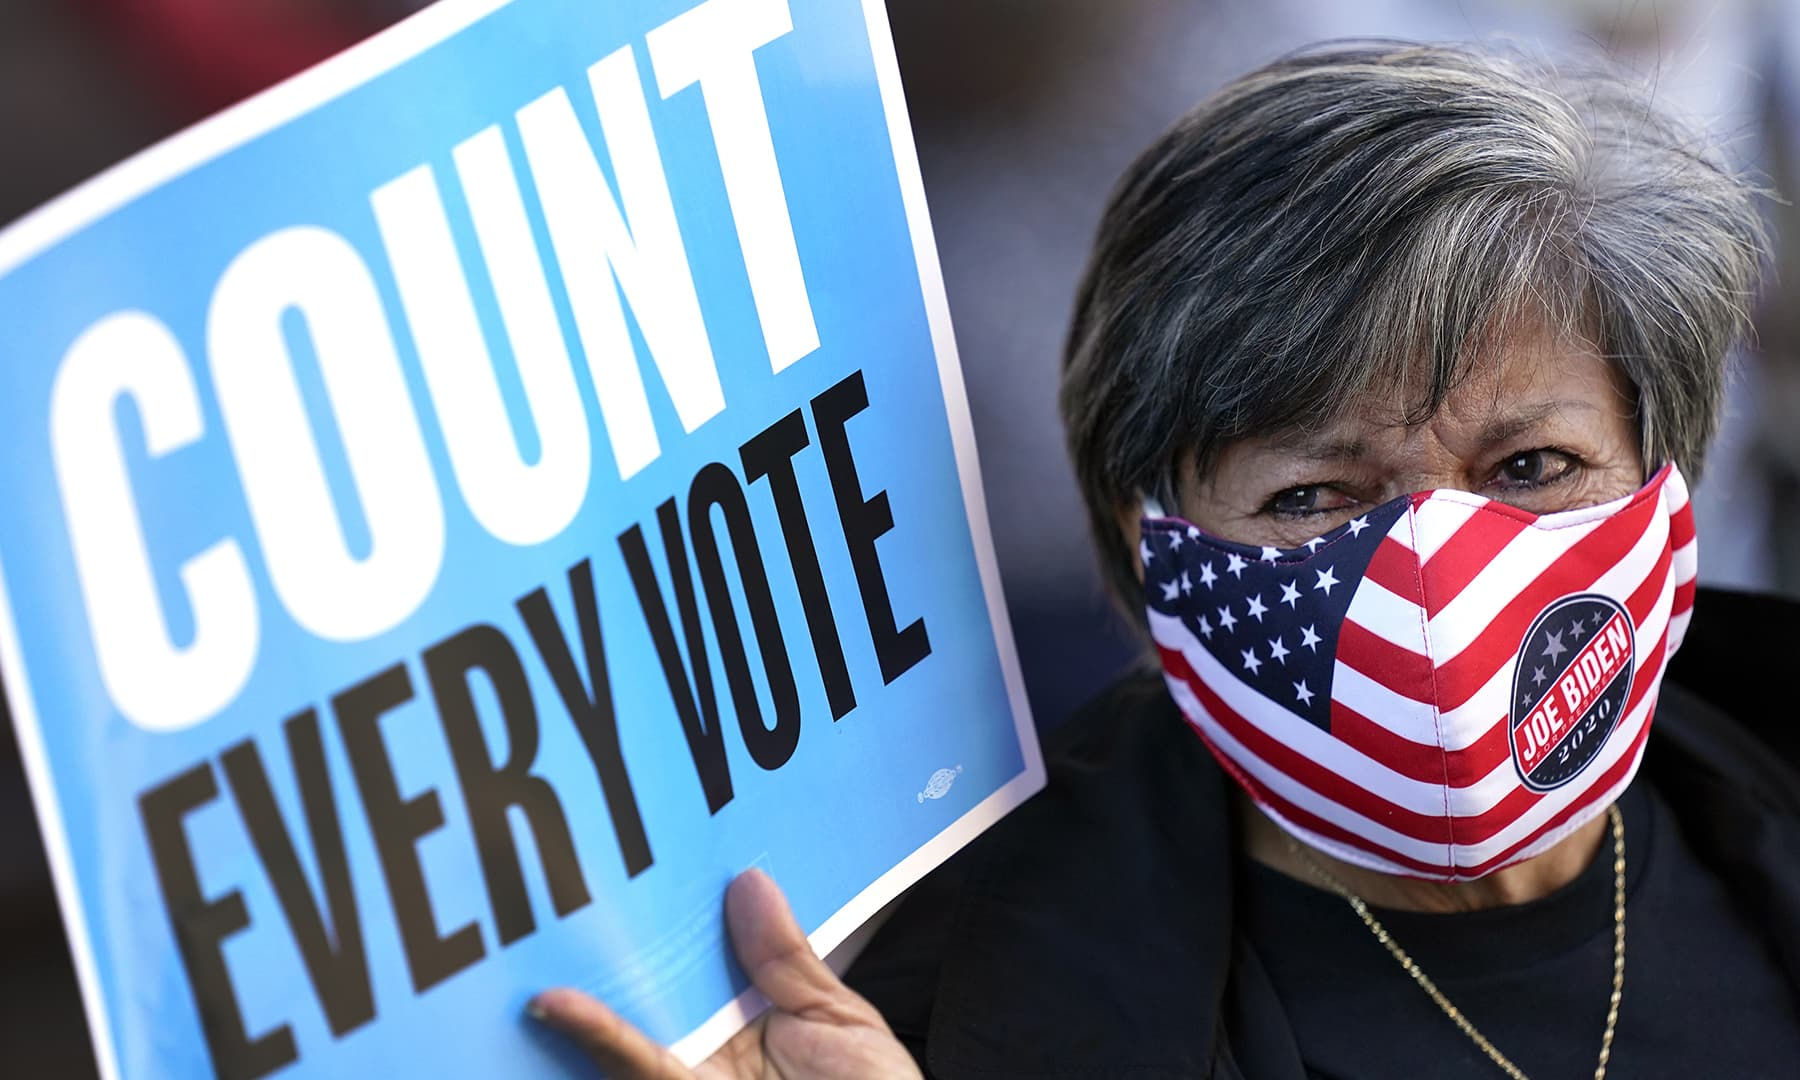 Volunteer election poll worker Cecilia Chaboudy-Dow joins demonstrators as they stand across the street from the federal courthouse in Houston, Monday, Nov 2, before a hearing in federal court involving drive-thru ballots cast in Harris County. — AP